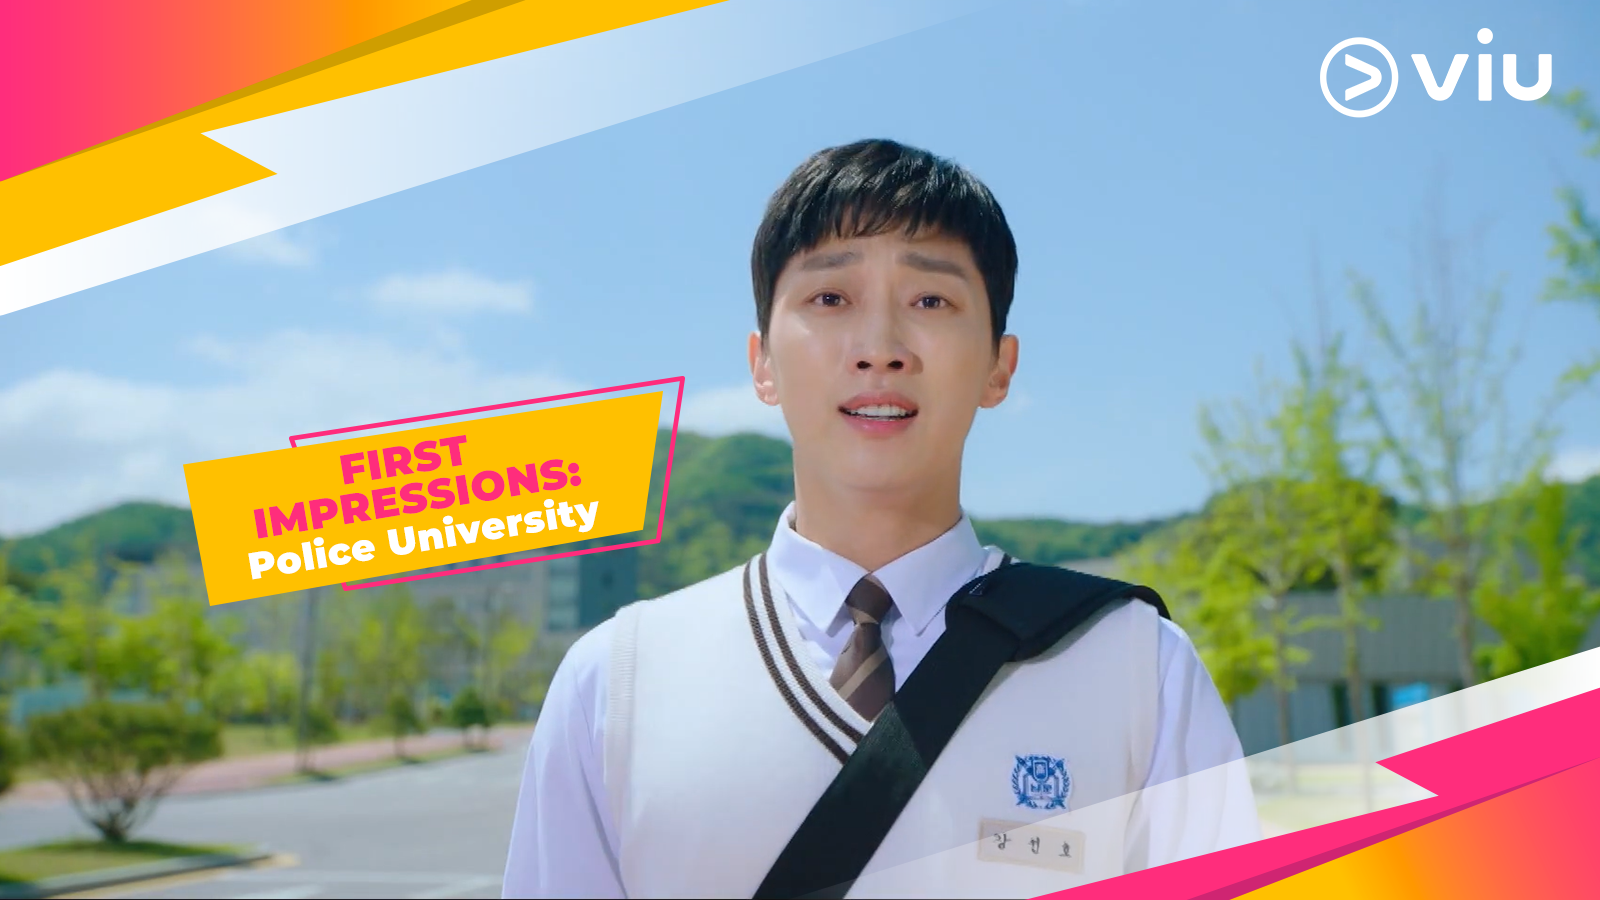 First Impressions: Police University